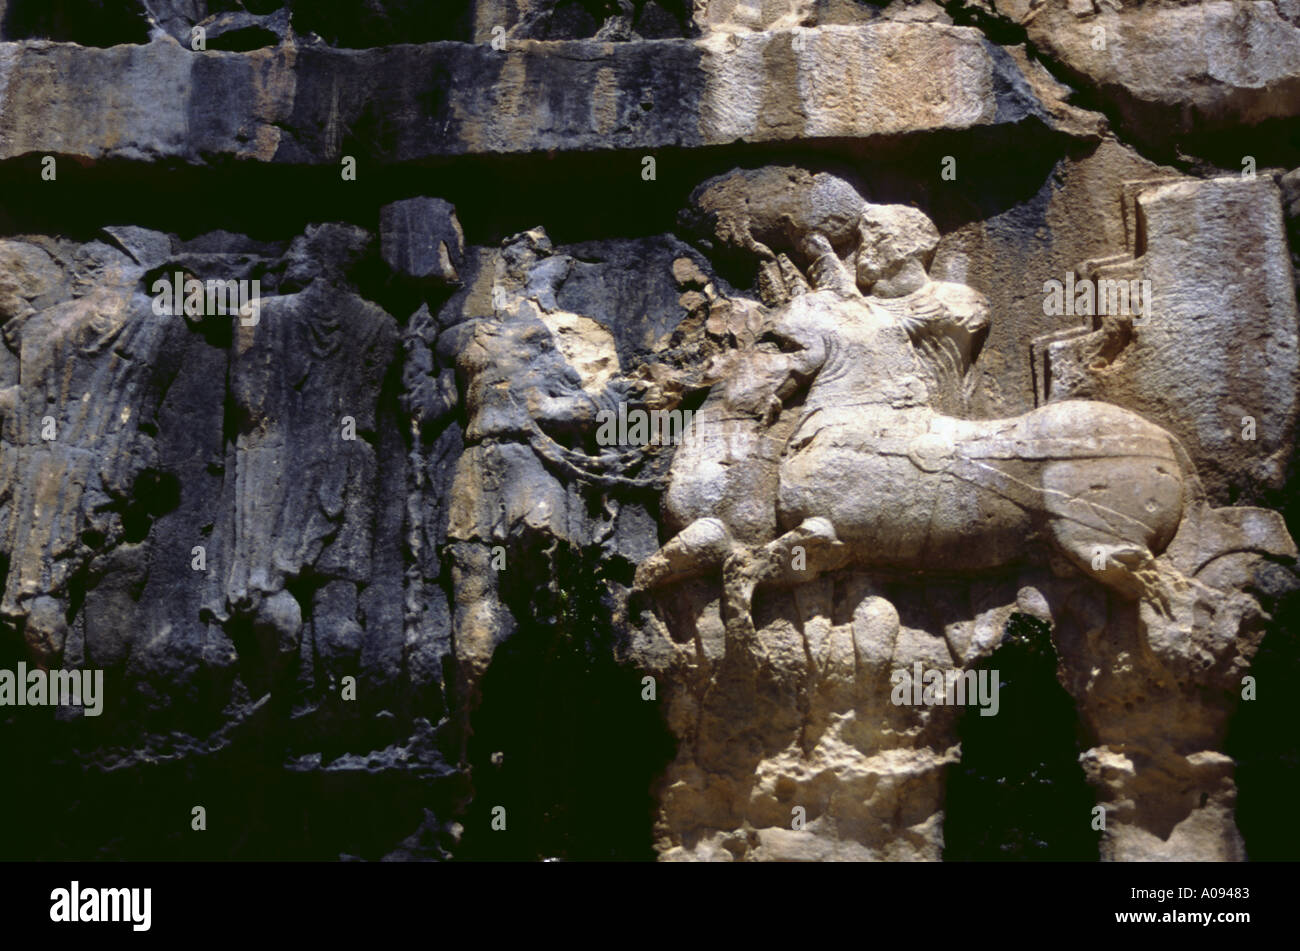 Iran stone reliefs at the valley of Bishahpur - Stock Image